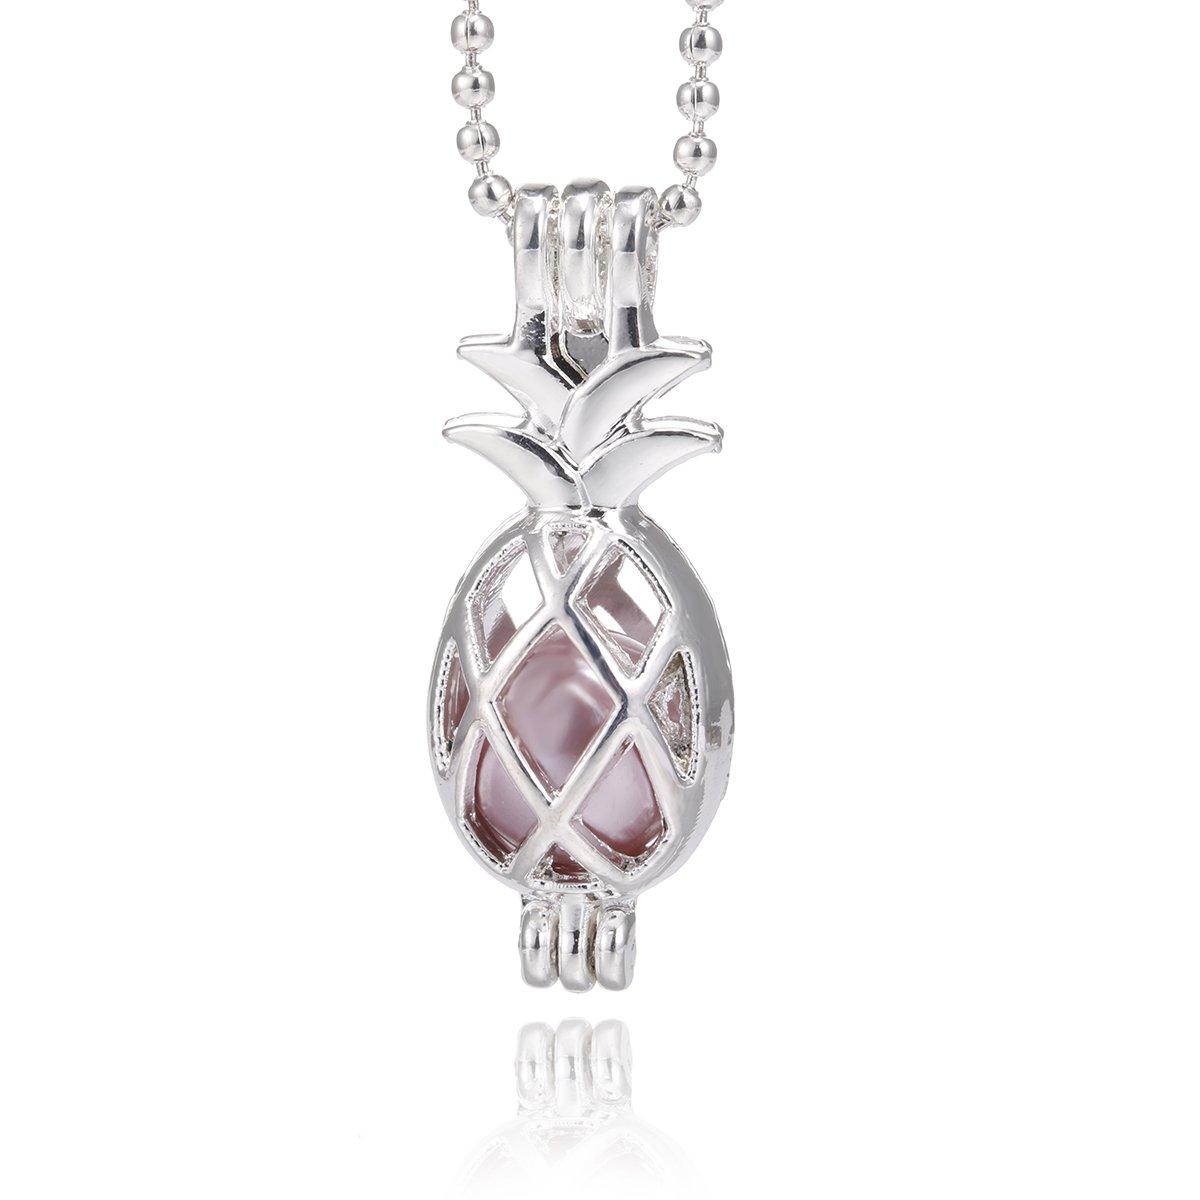 Crystal Queen Silver Pearl Cage Necklace Beads Cage Locket Pendant Necklace Jewelry Essential Oil Diffuser